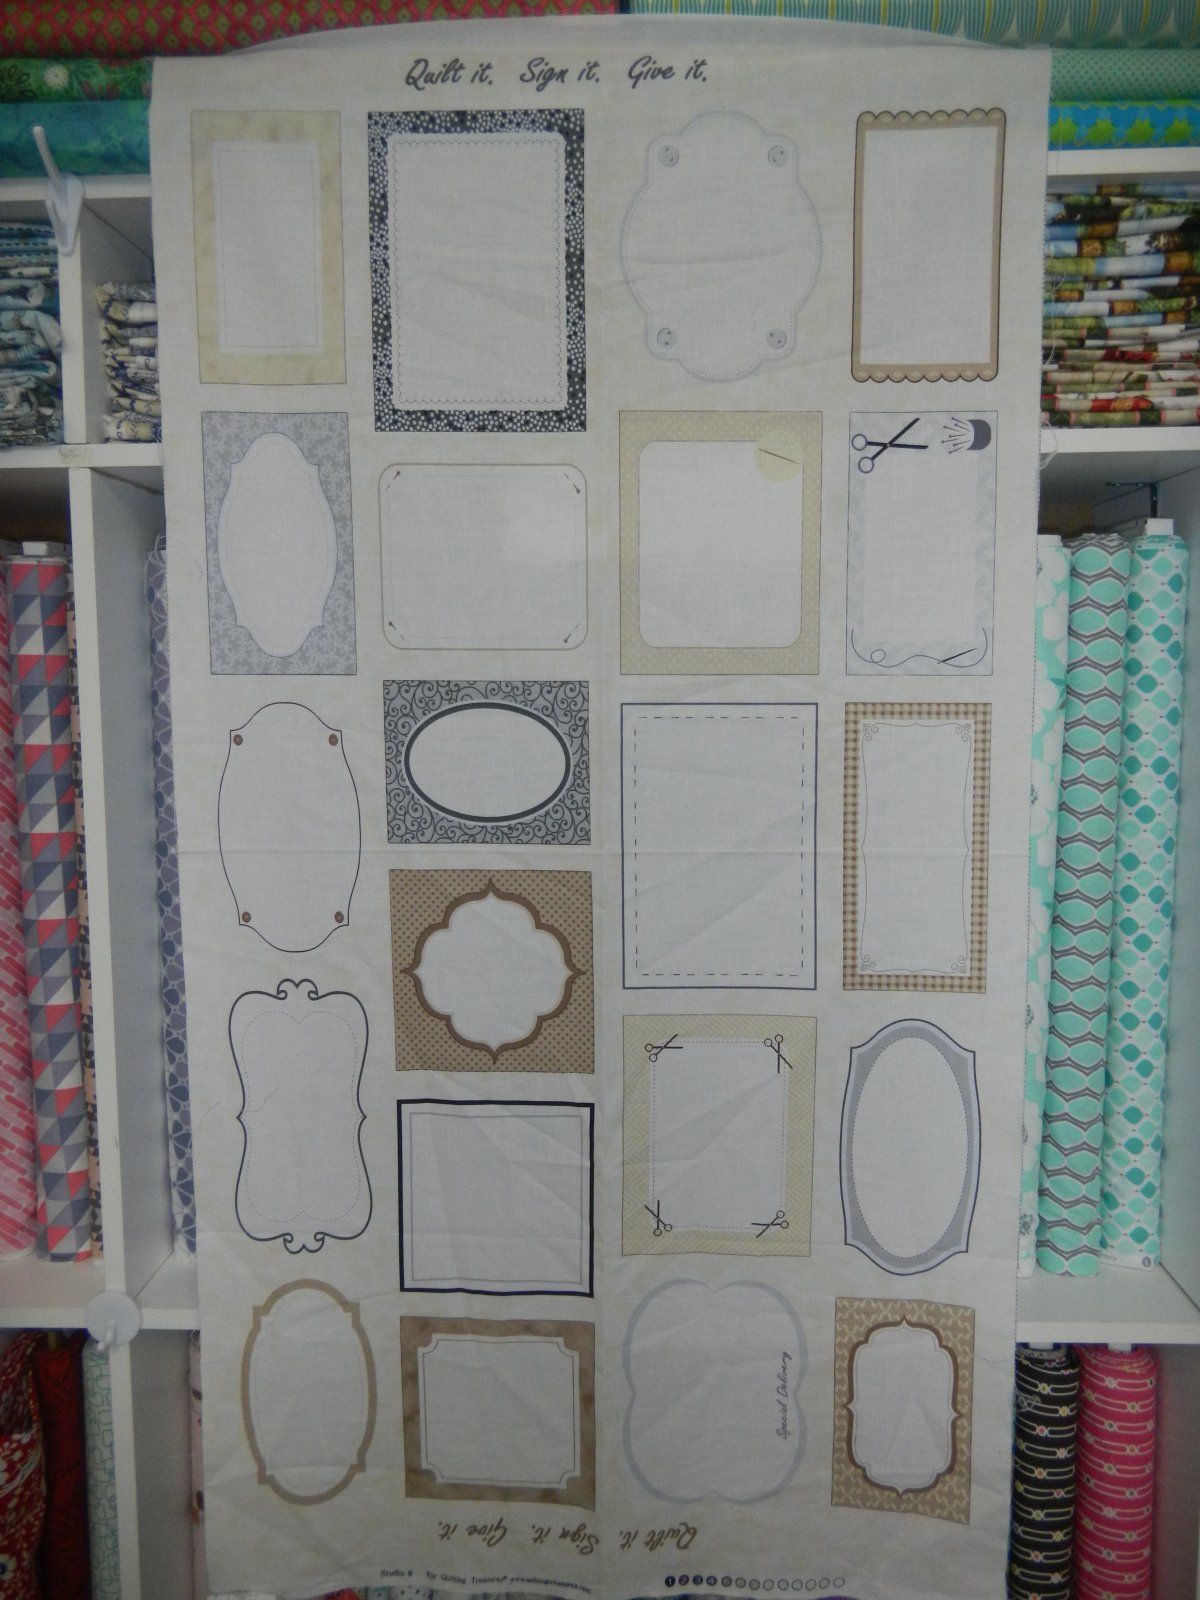 Panel#124 - Panel of Quilt Labels